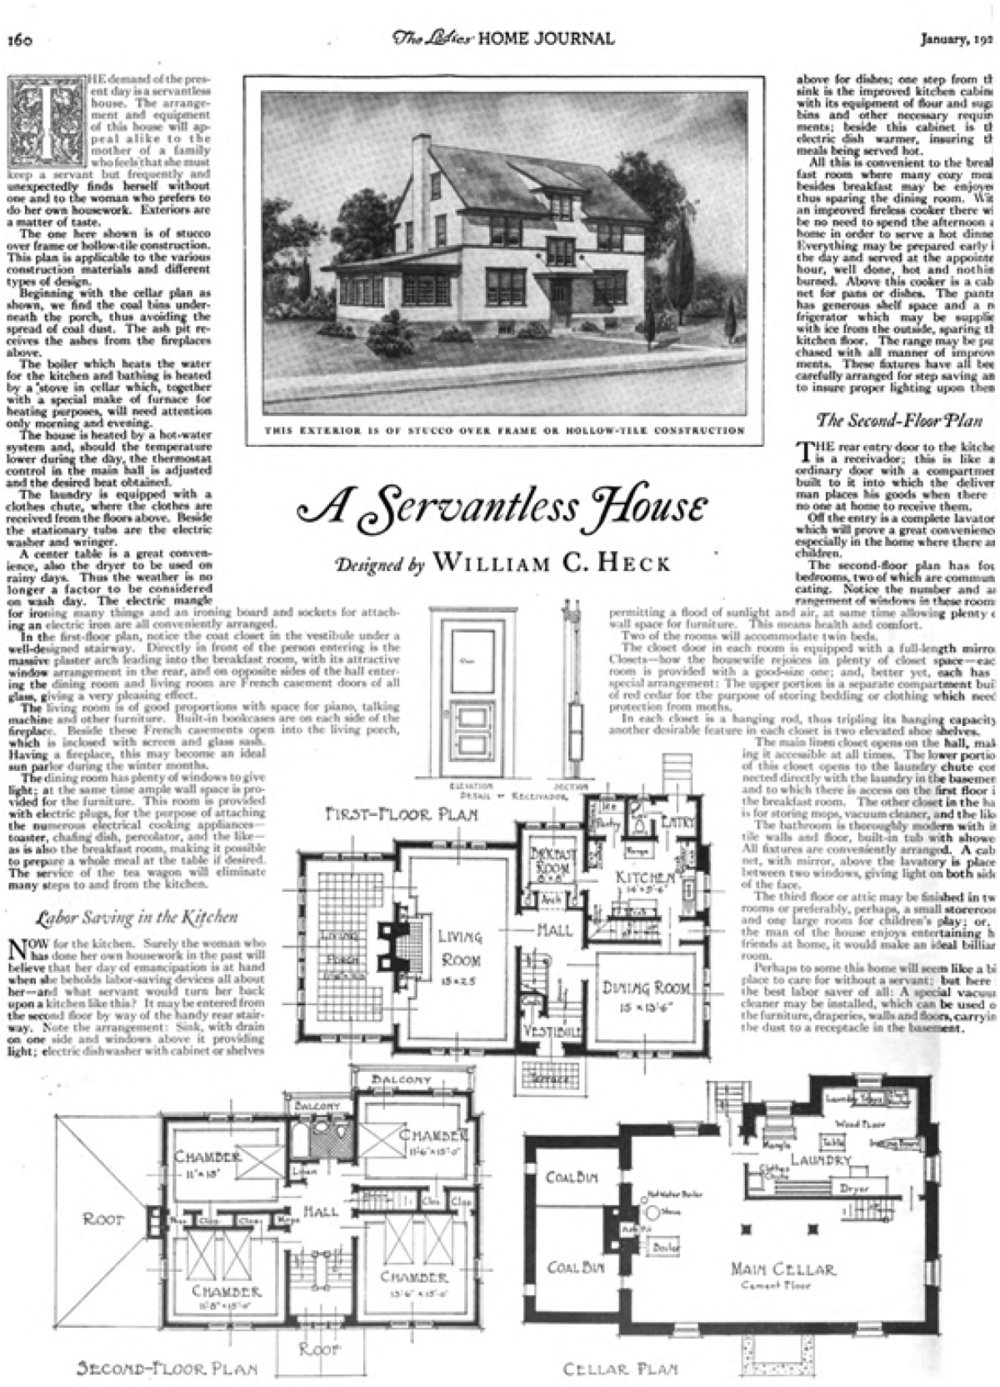 """A Servantless House"" by William C. Heck for the Ladies Home Journal in 1922."